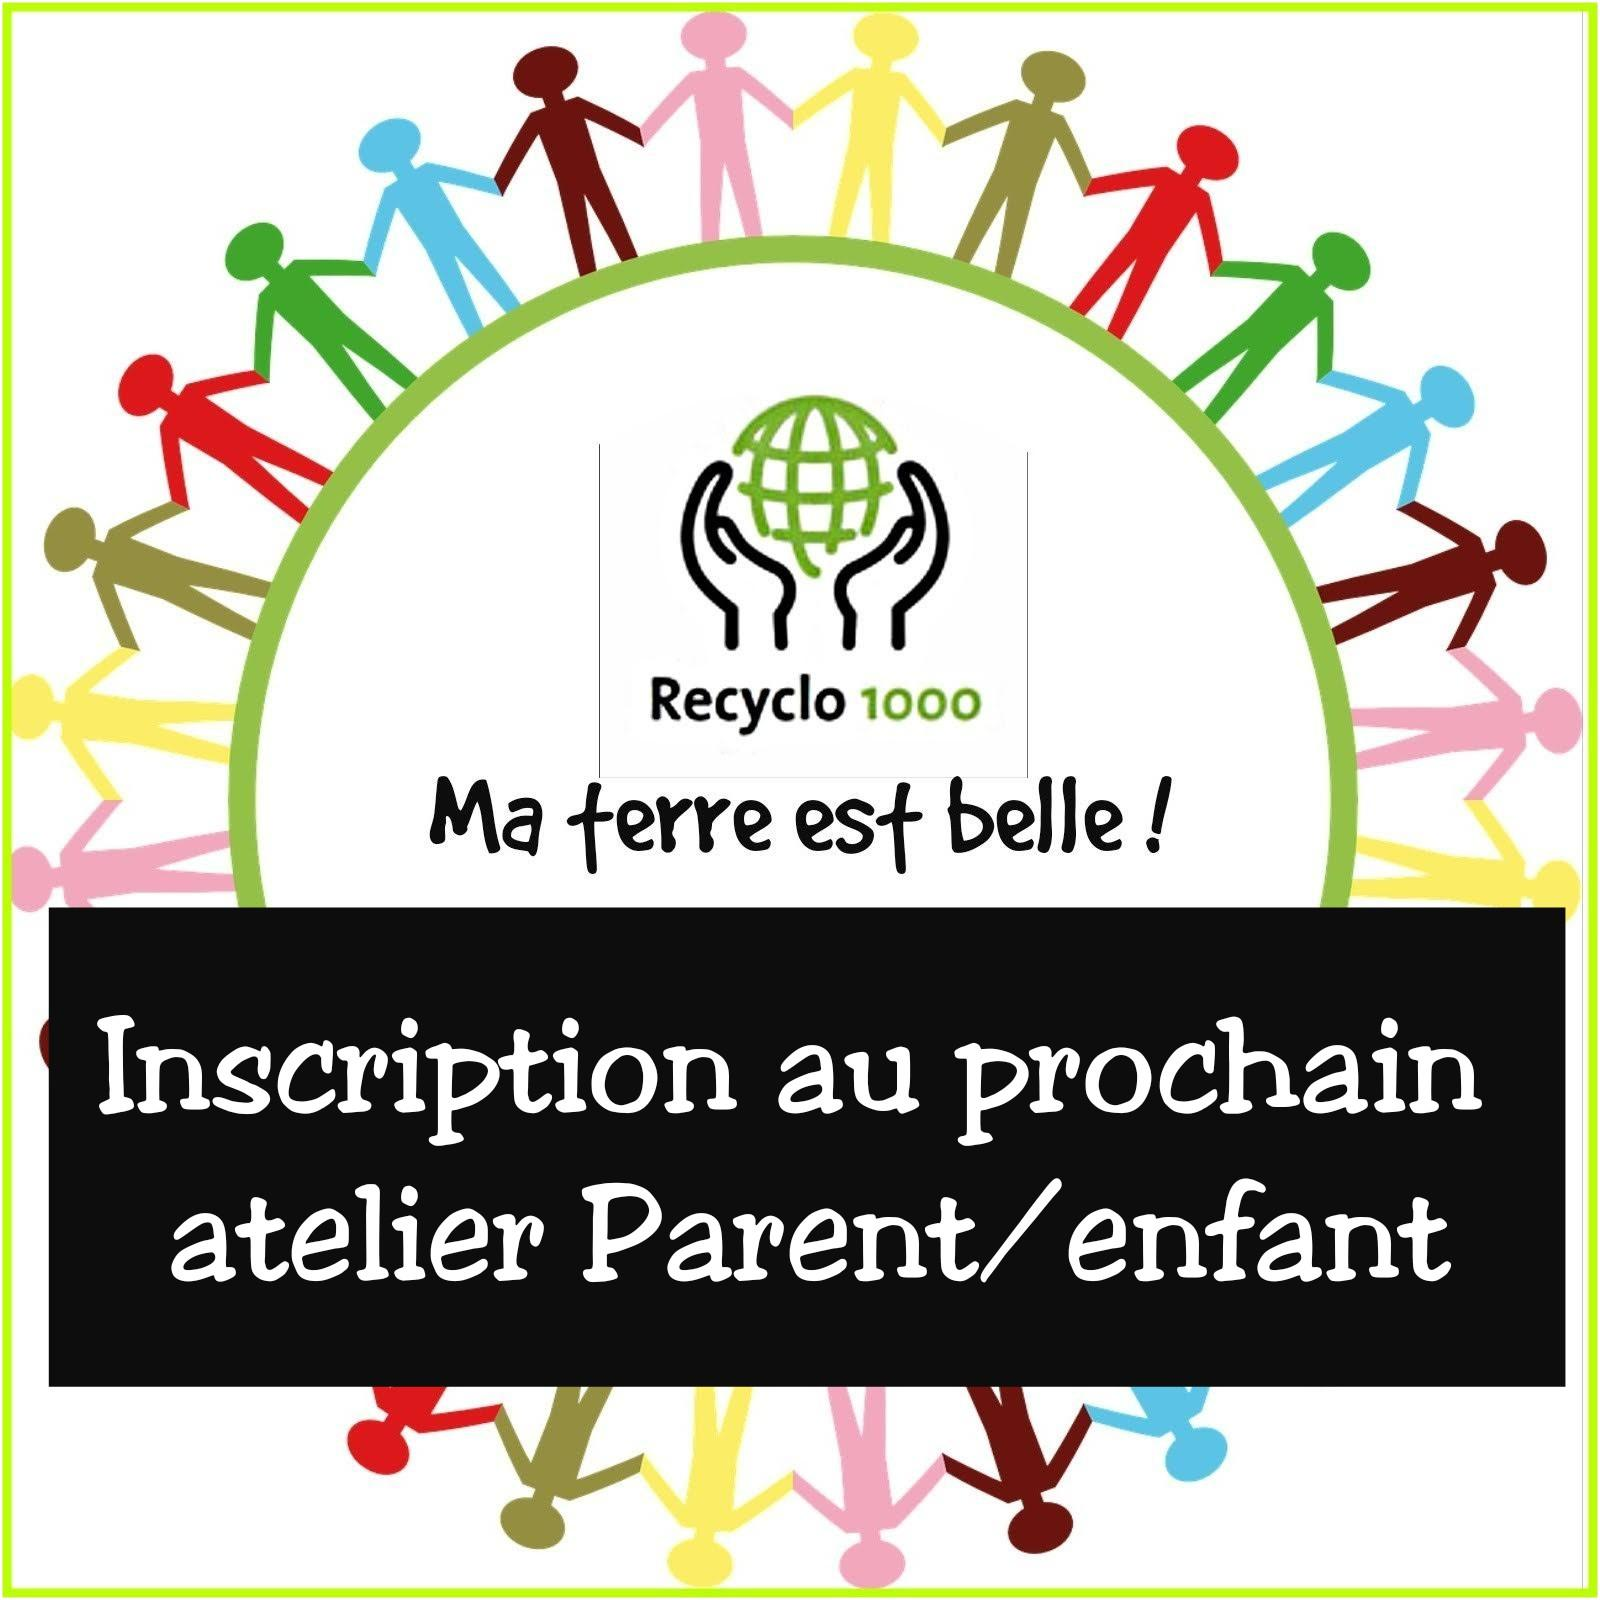 Inscription au prochain atelier parents/enfants